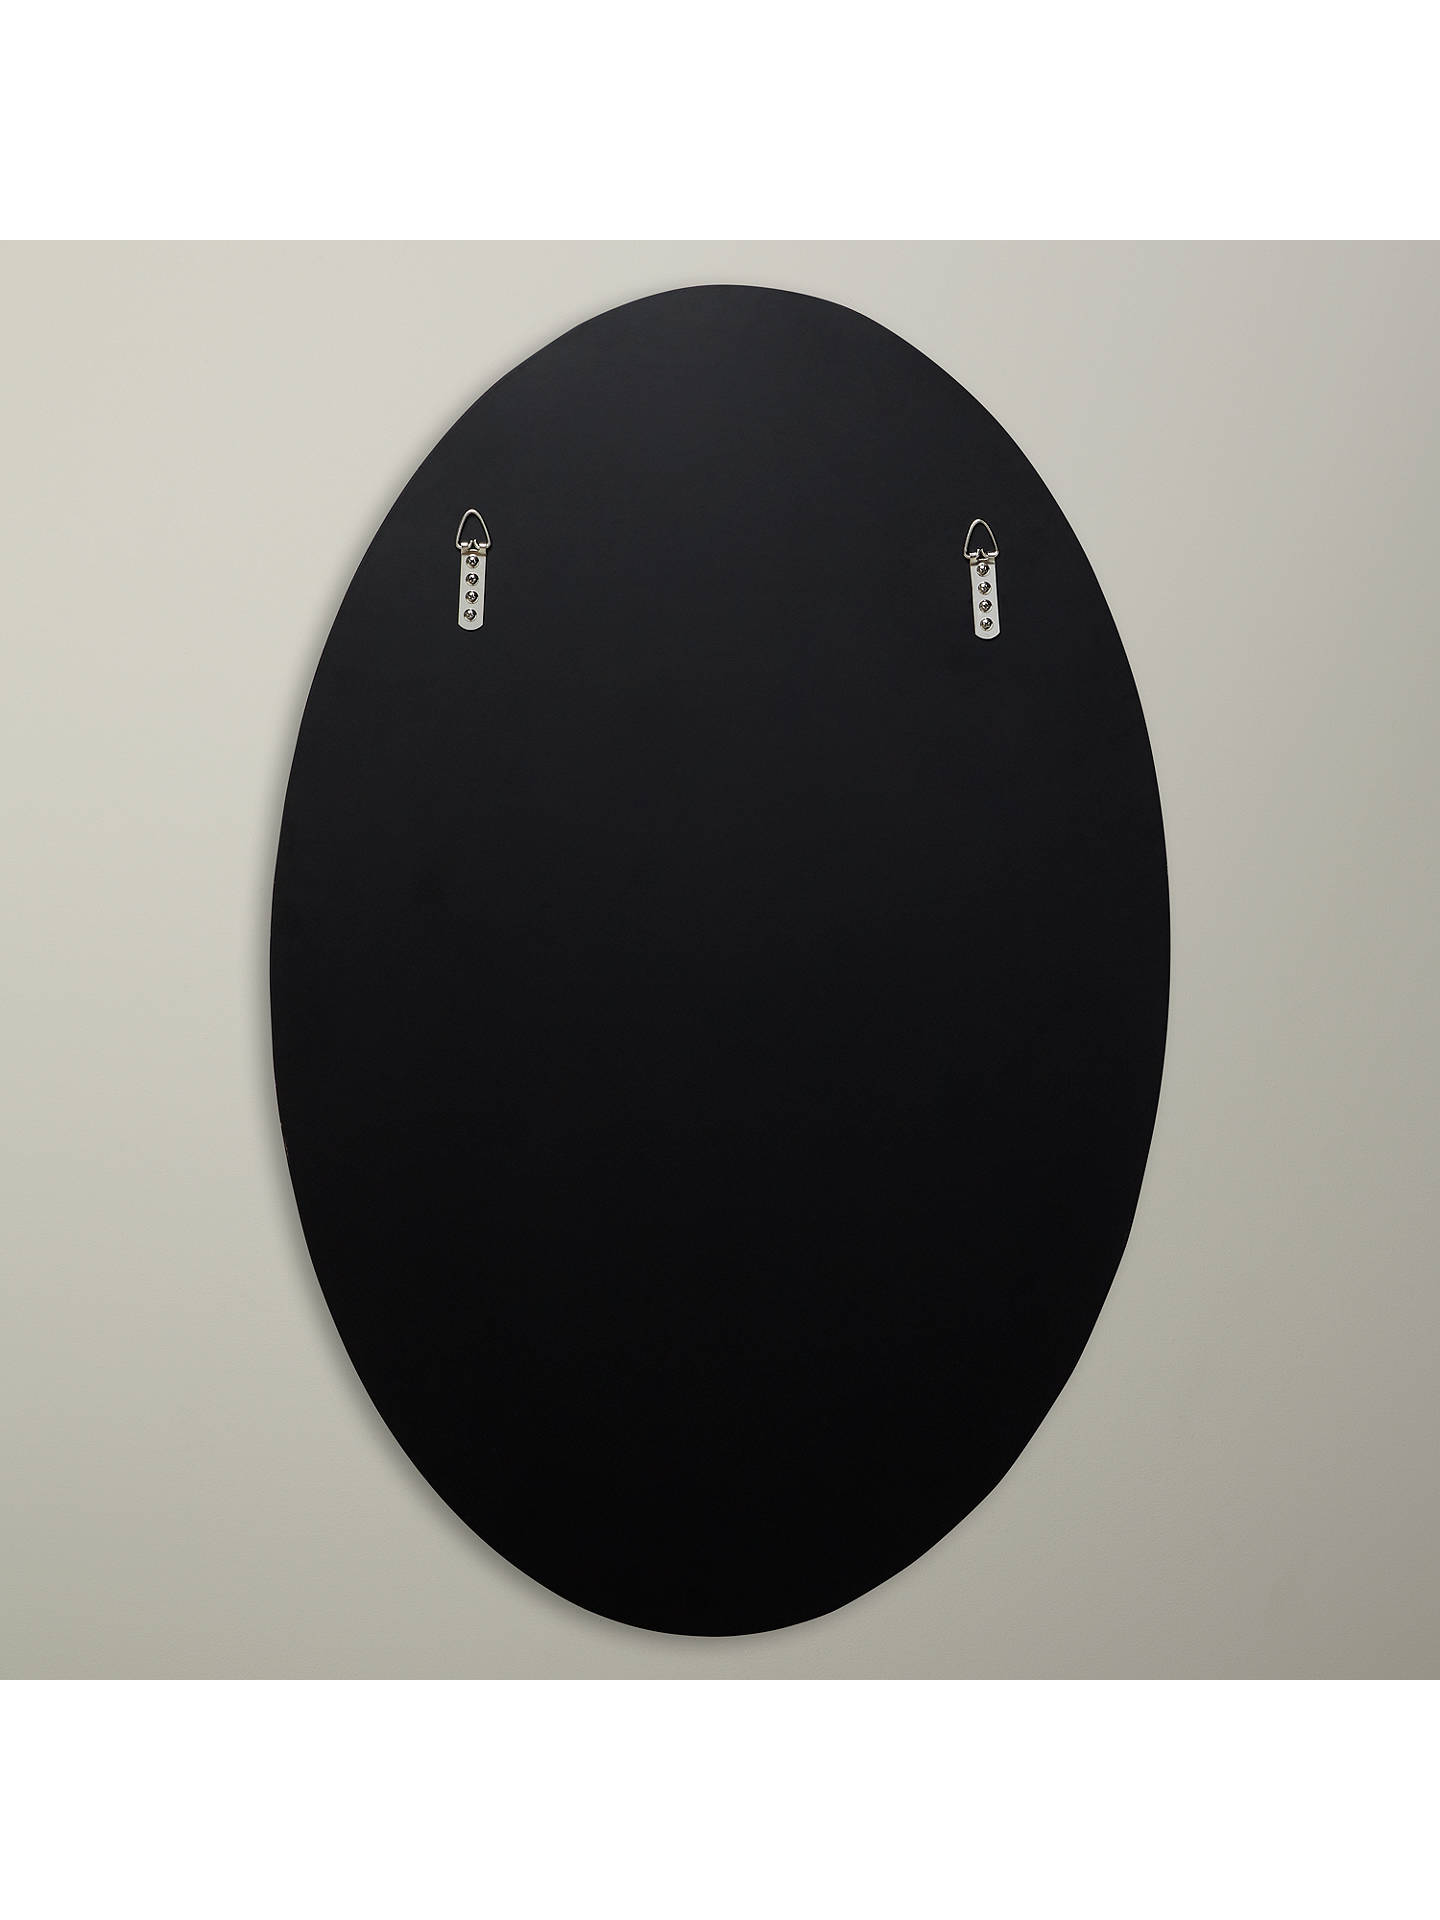 BuyJohn Lewis & Partners Engraved Oval Mirror, 90 x 60cm, Smoke Online at johnlewis.com